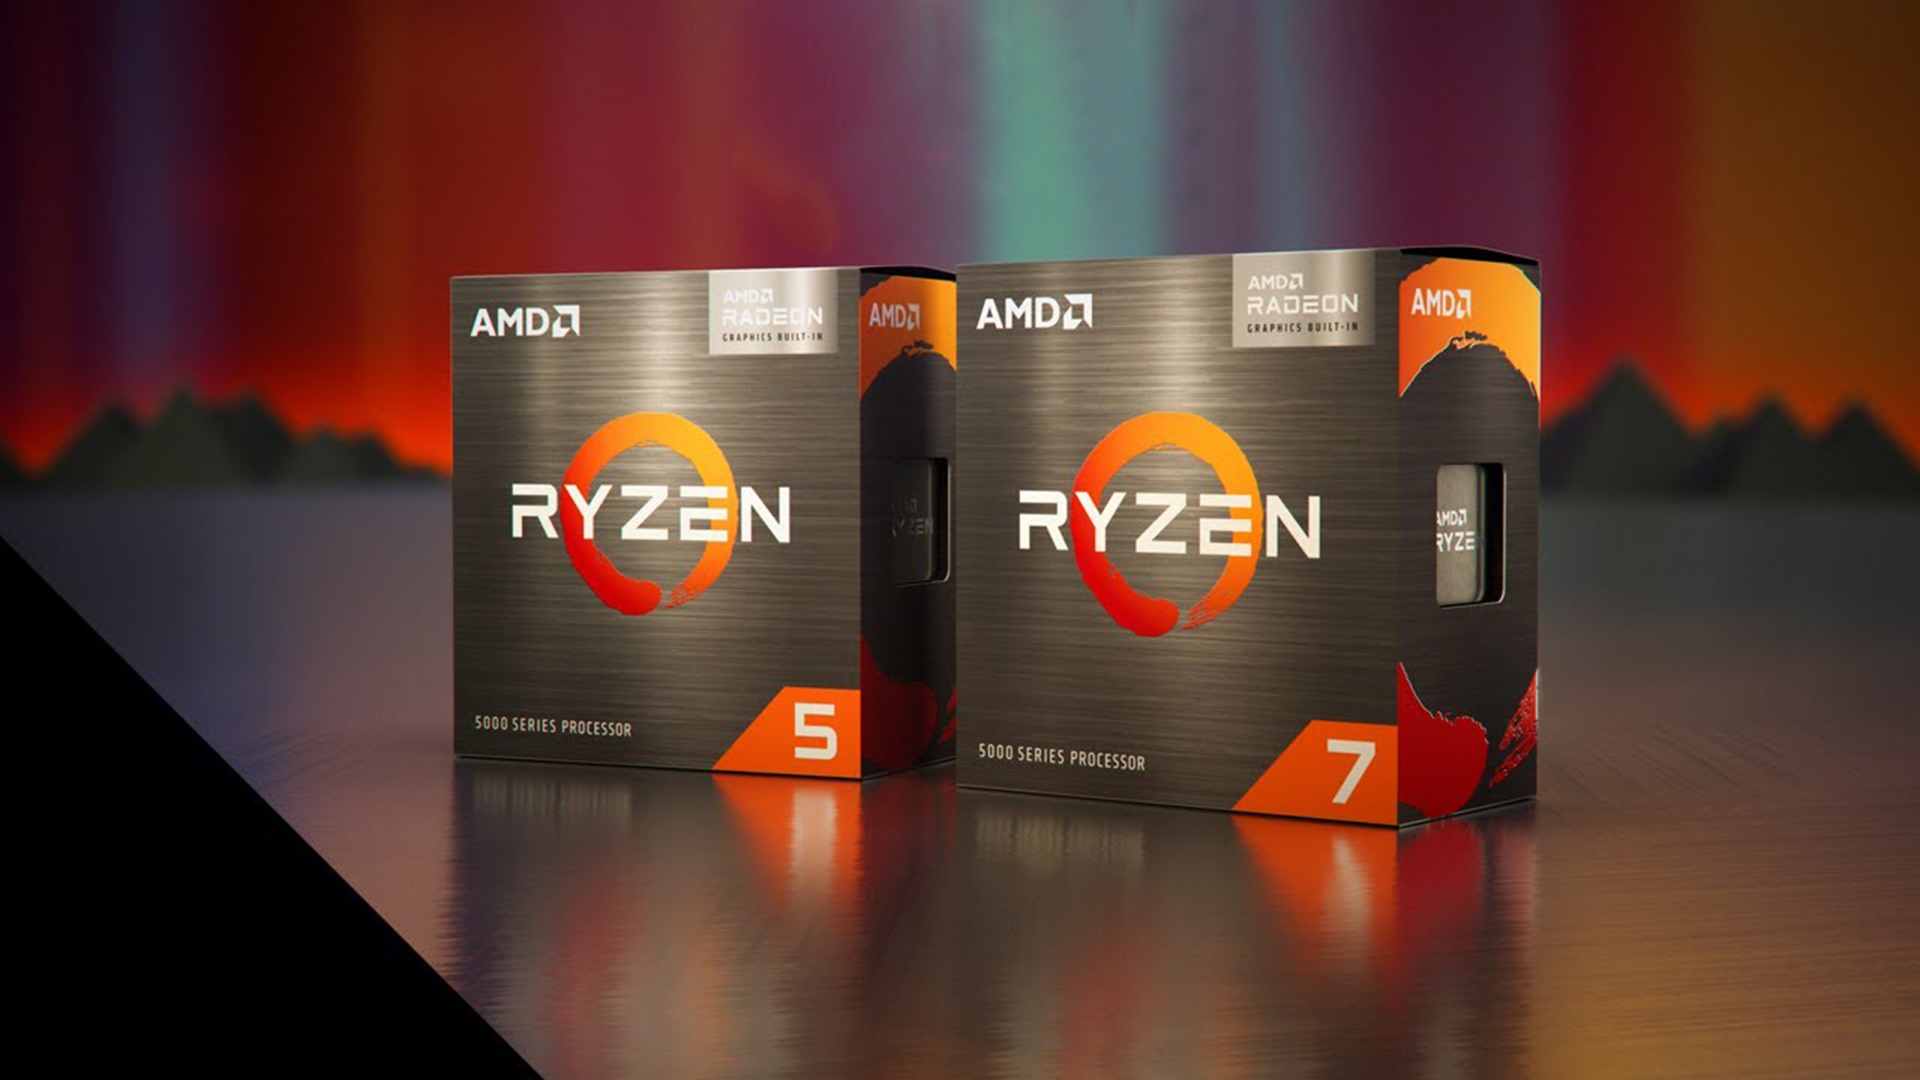 amd-ryzen-prices-are-falling-–-should-intel-be-concerened?